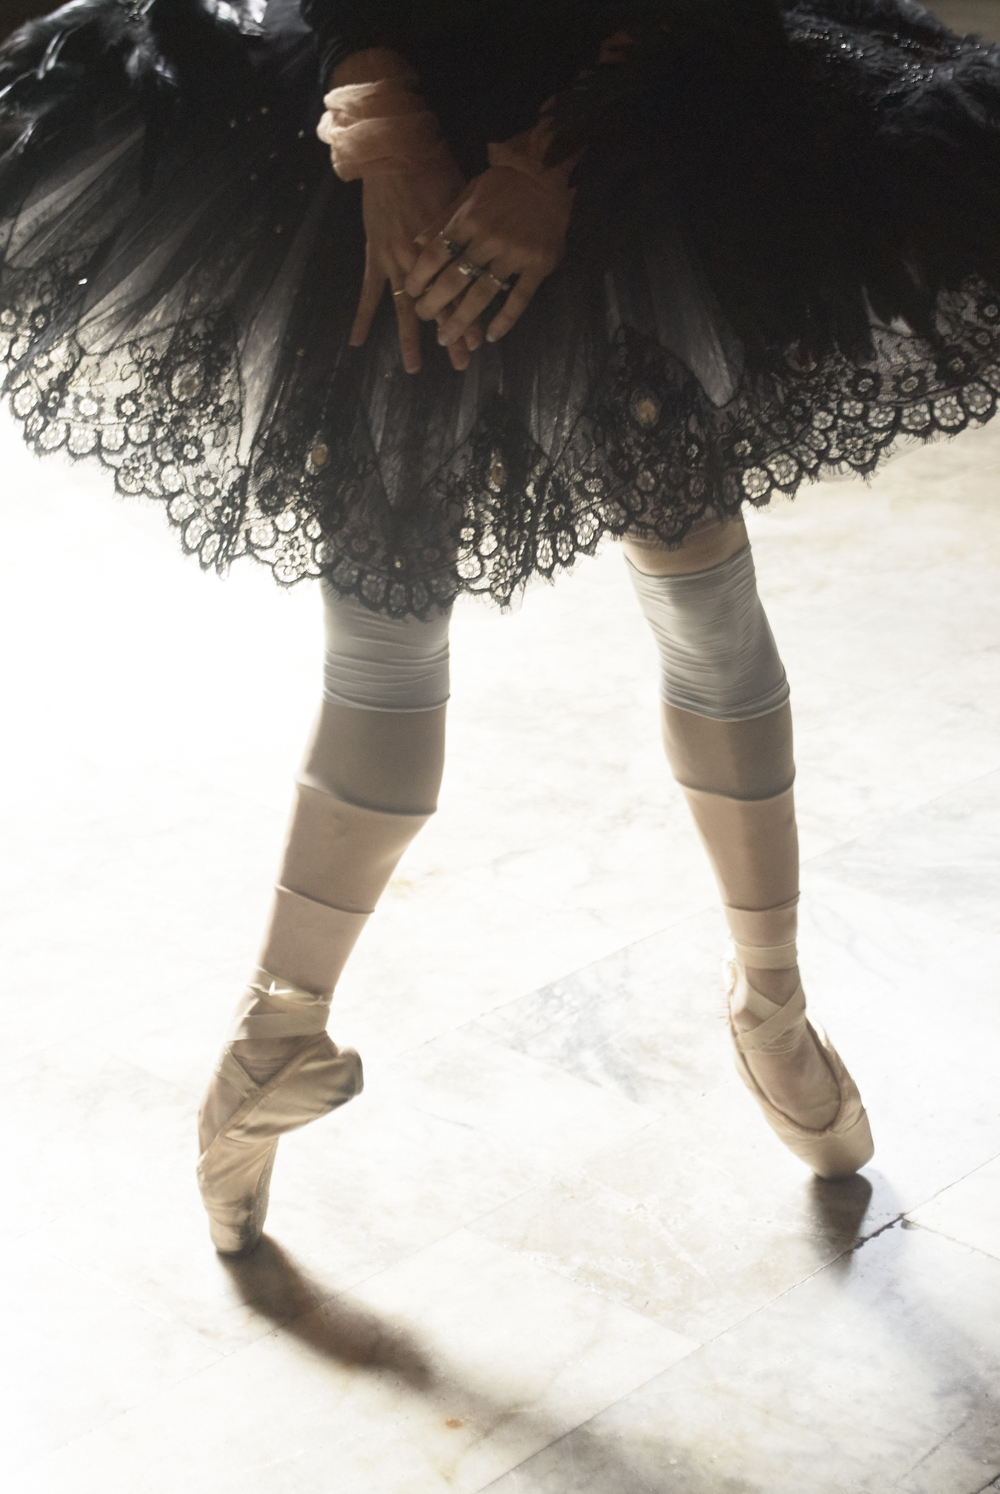 Tutu by Yi Li, BFA Fashion Design. Leotard and Pointe Shoes, model's own. All stockings, stylist's own.